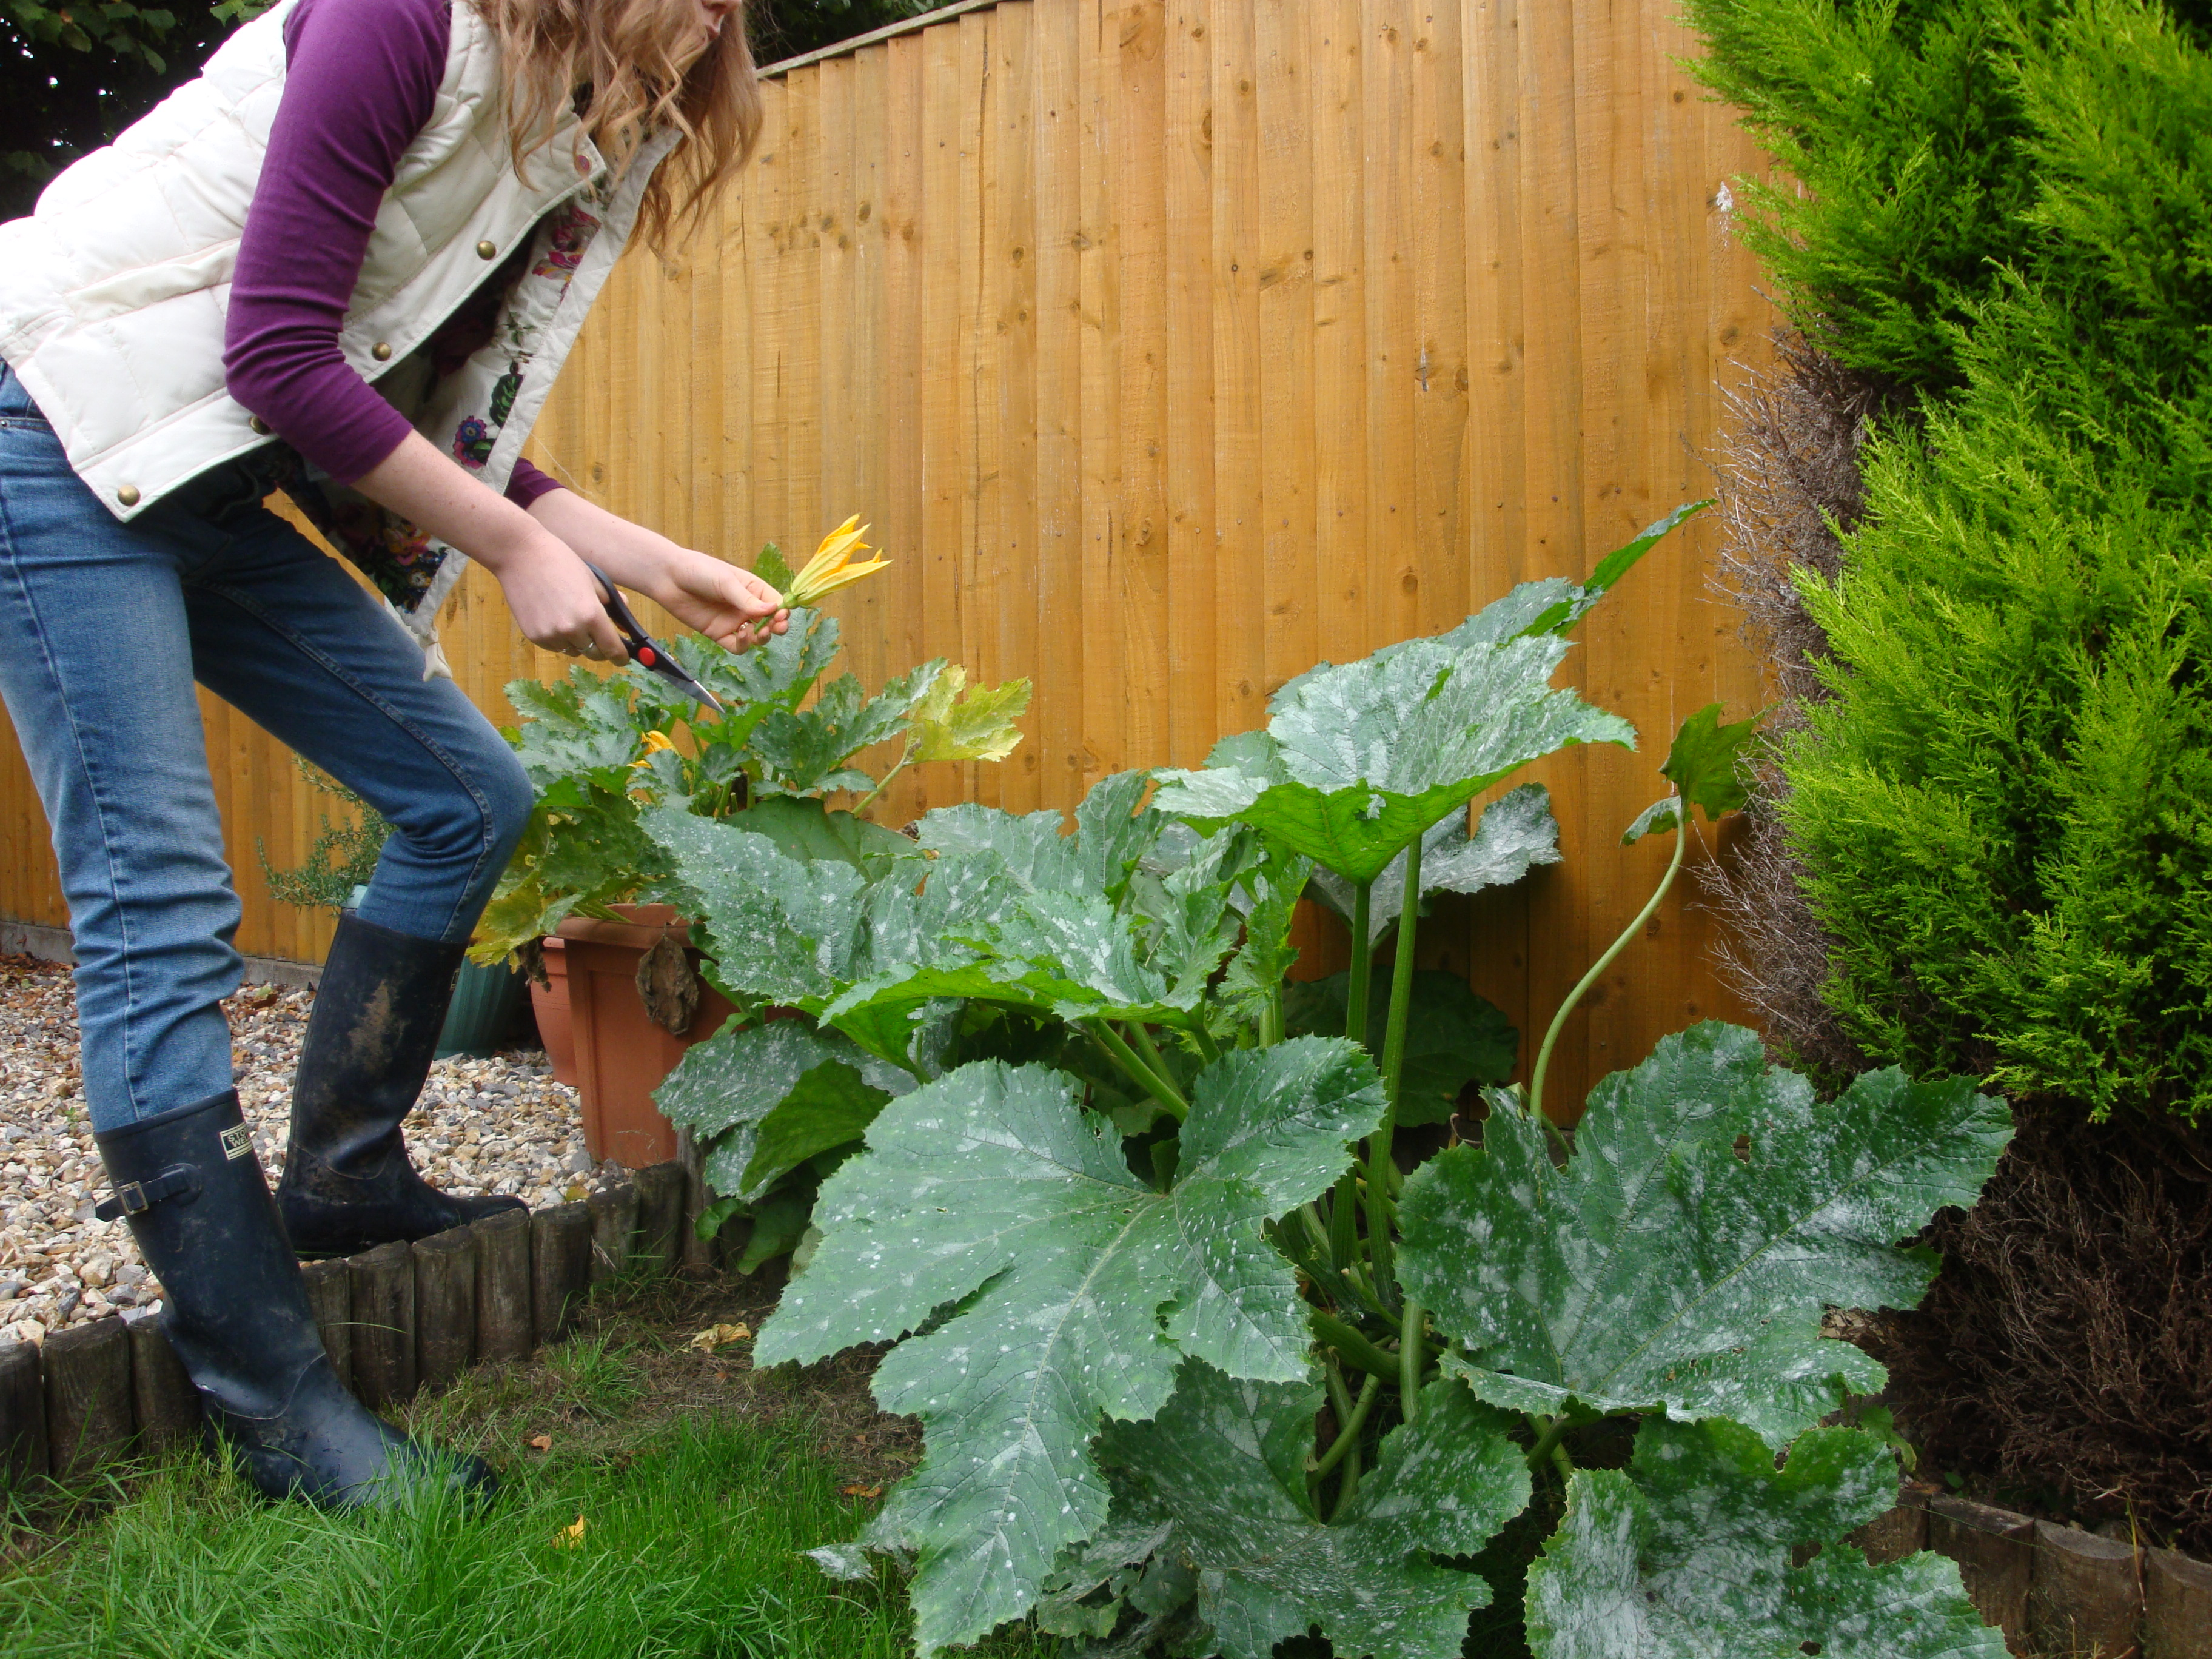 Gardening in a Joules Gilet, Cheap Monday Jeans and Storm Wells Wellington Boots